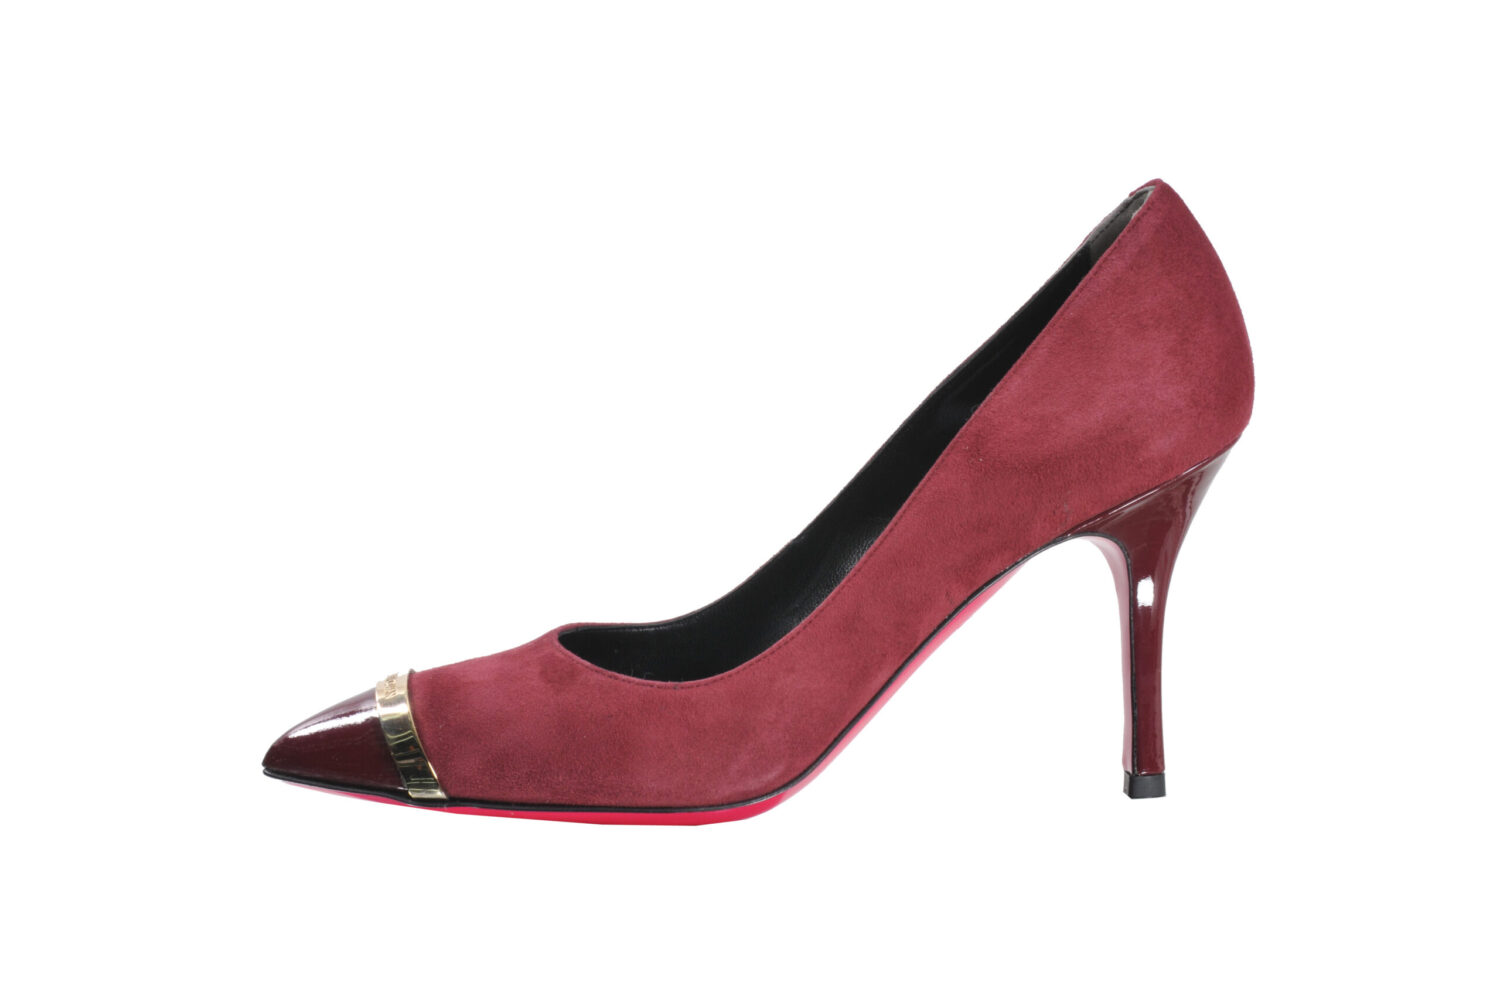 Luciano Padovan - Regina Raspberry Red Suede Court Shoe